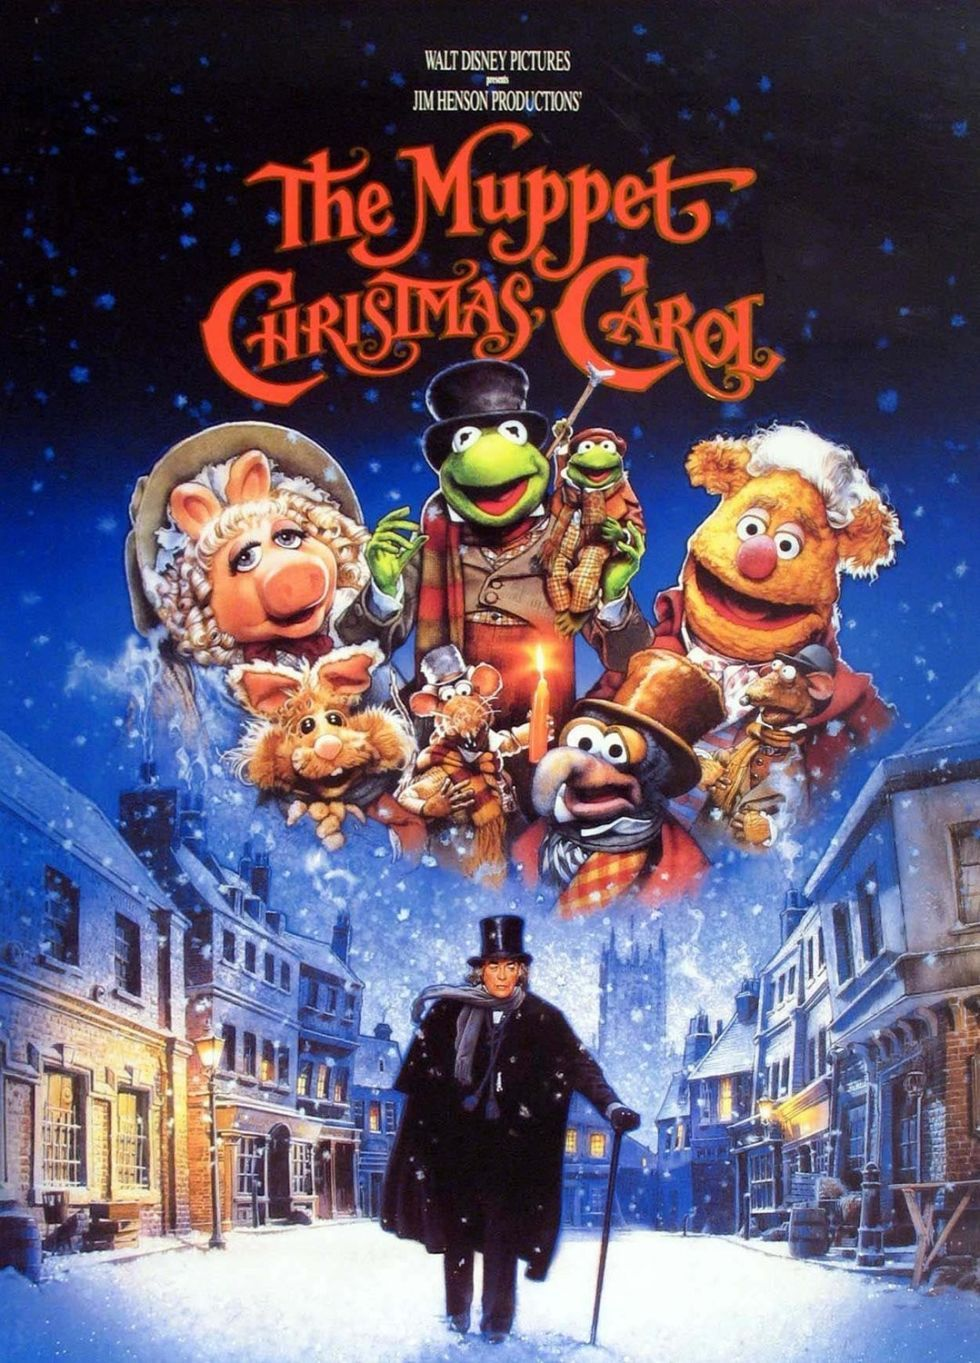 Christmas movies - tales of good 51